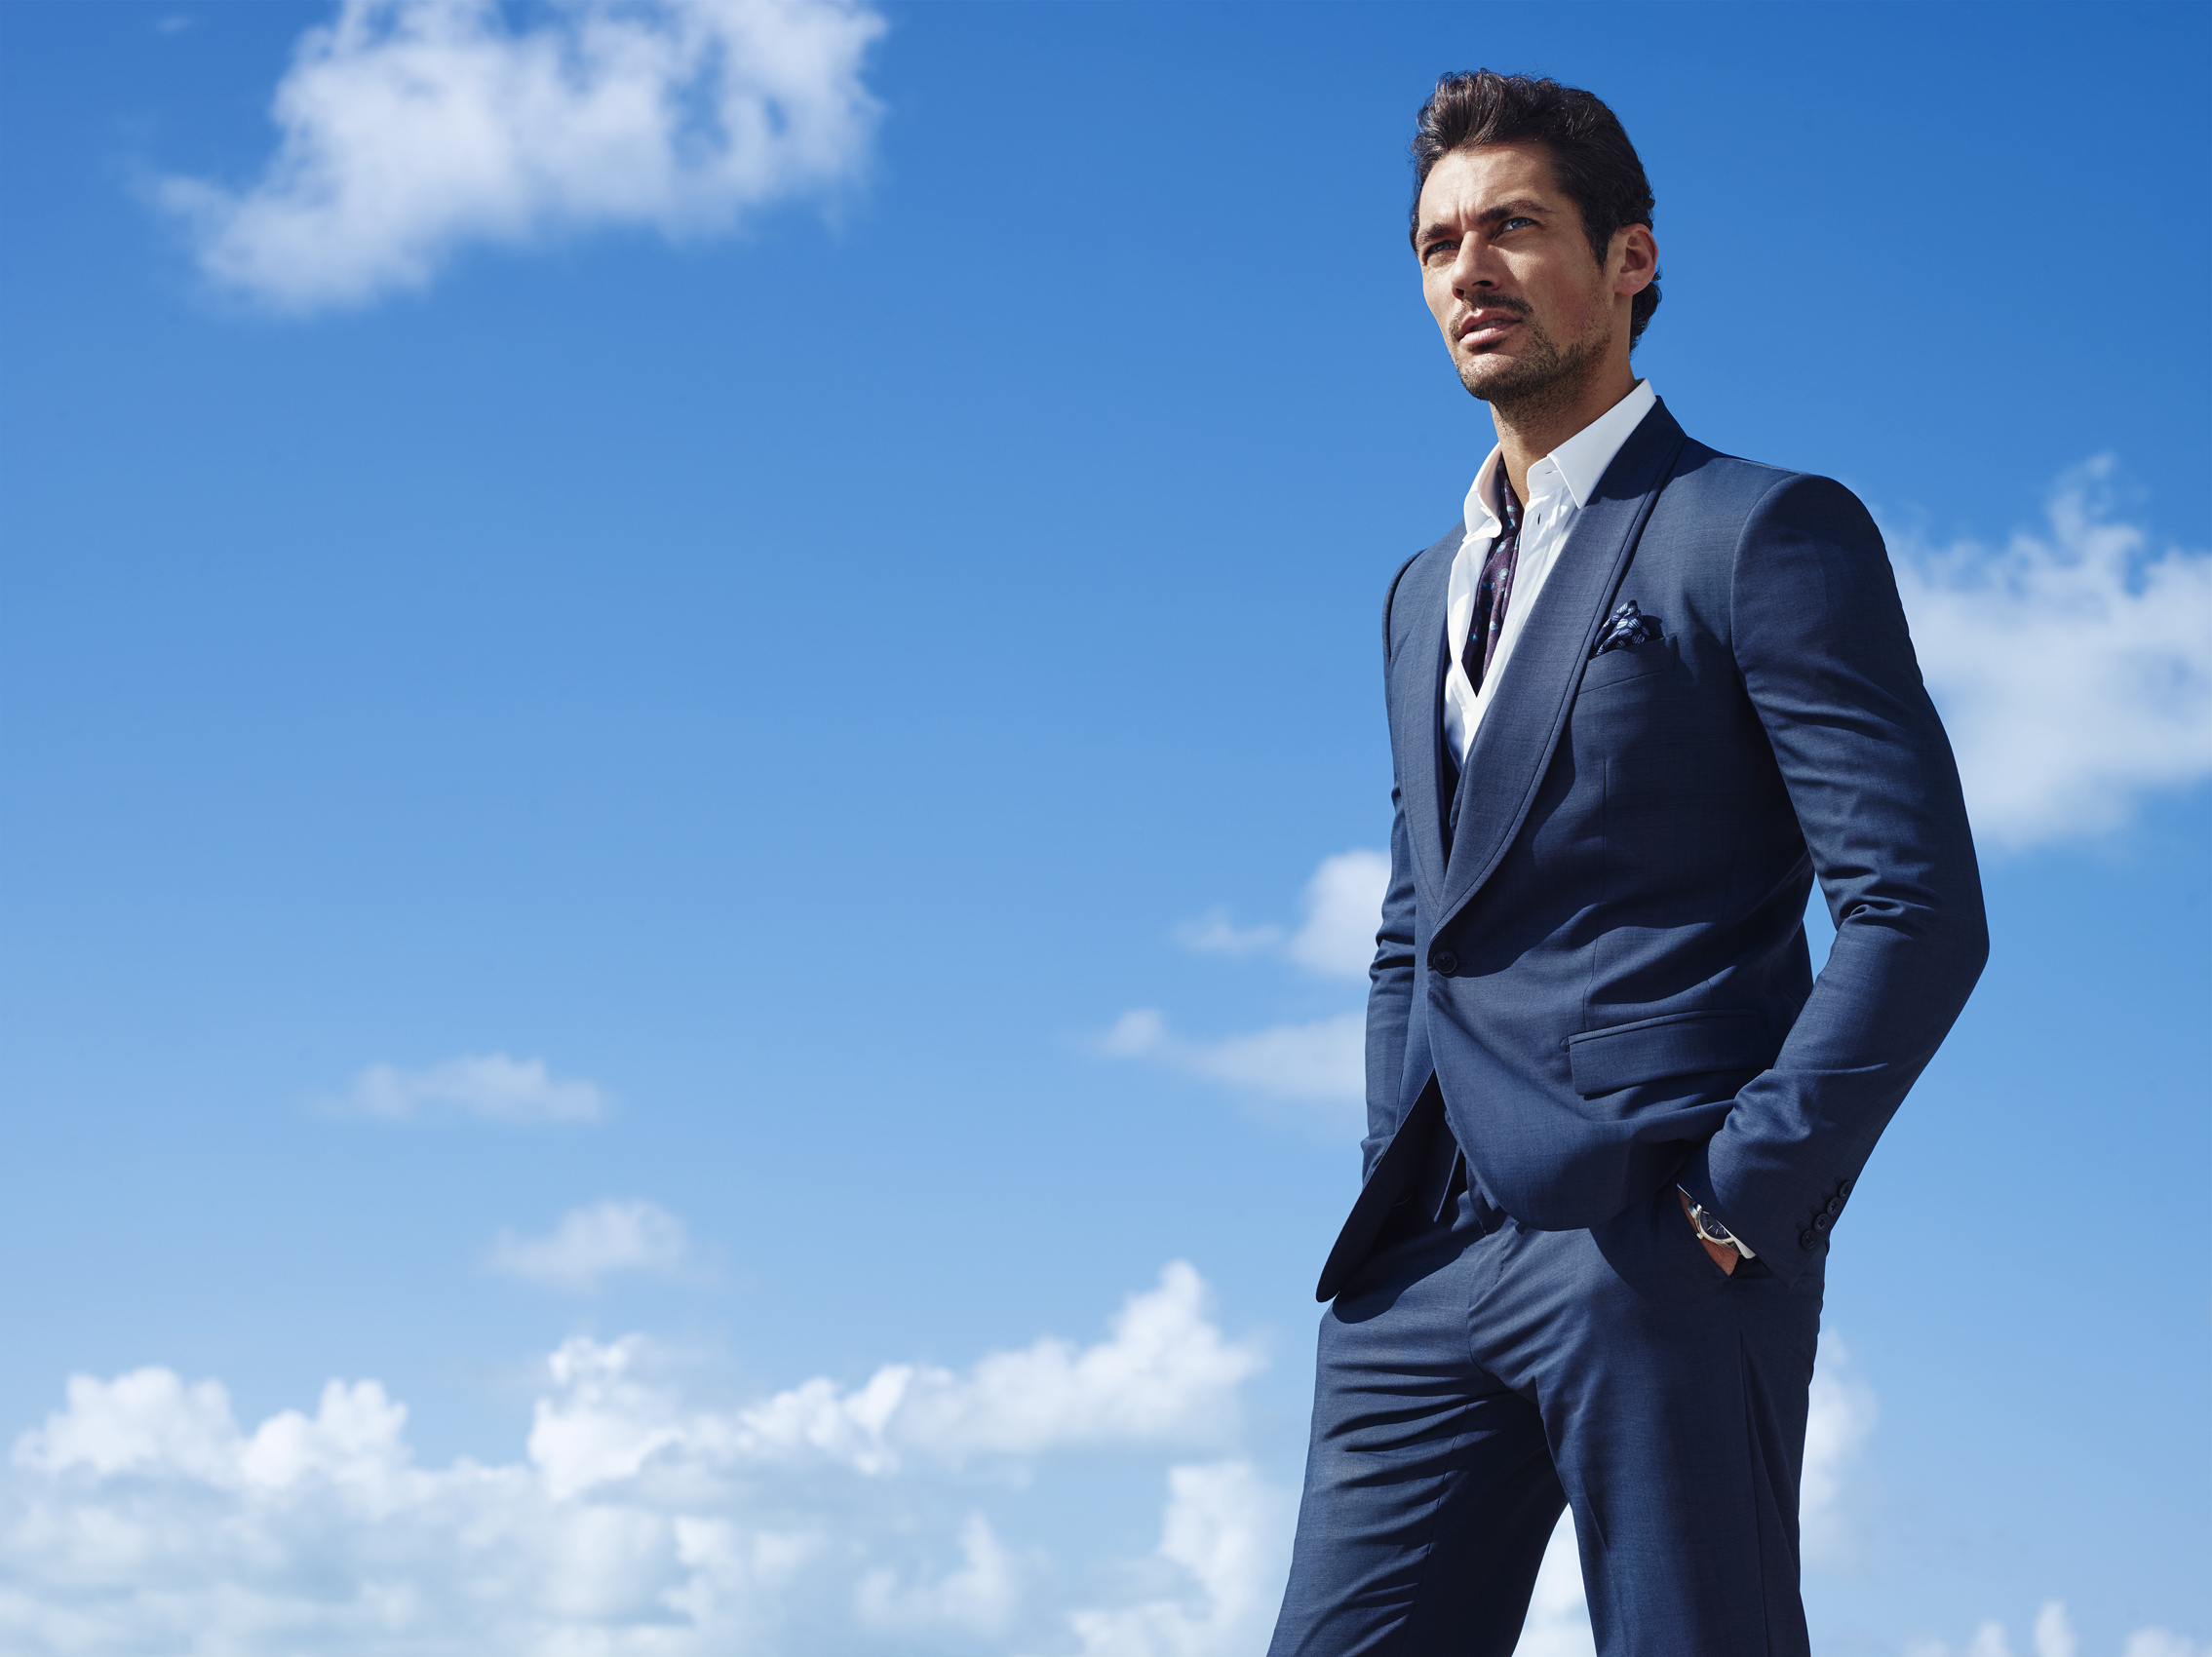 20150711_JR_DavidGandy_0081B_flat_web